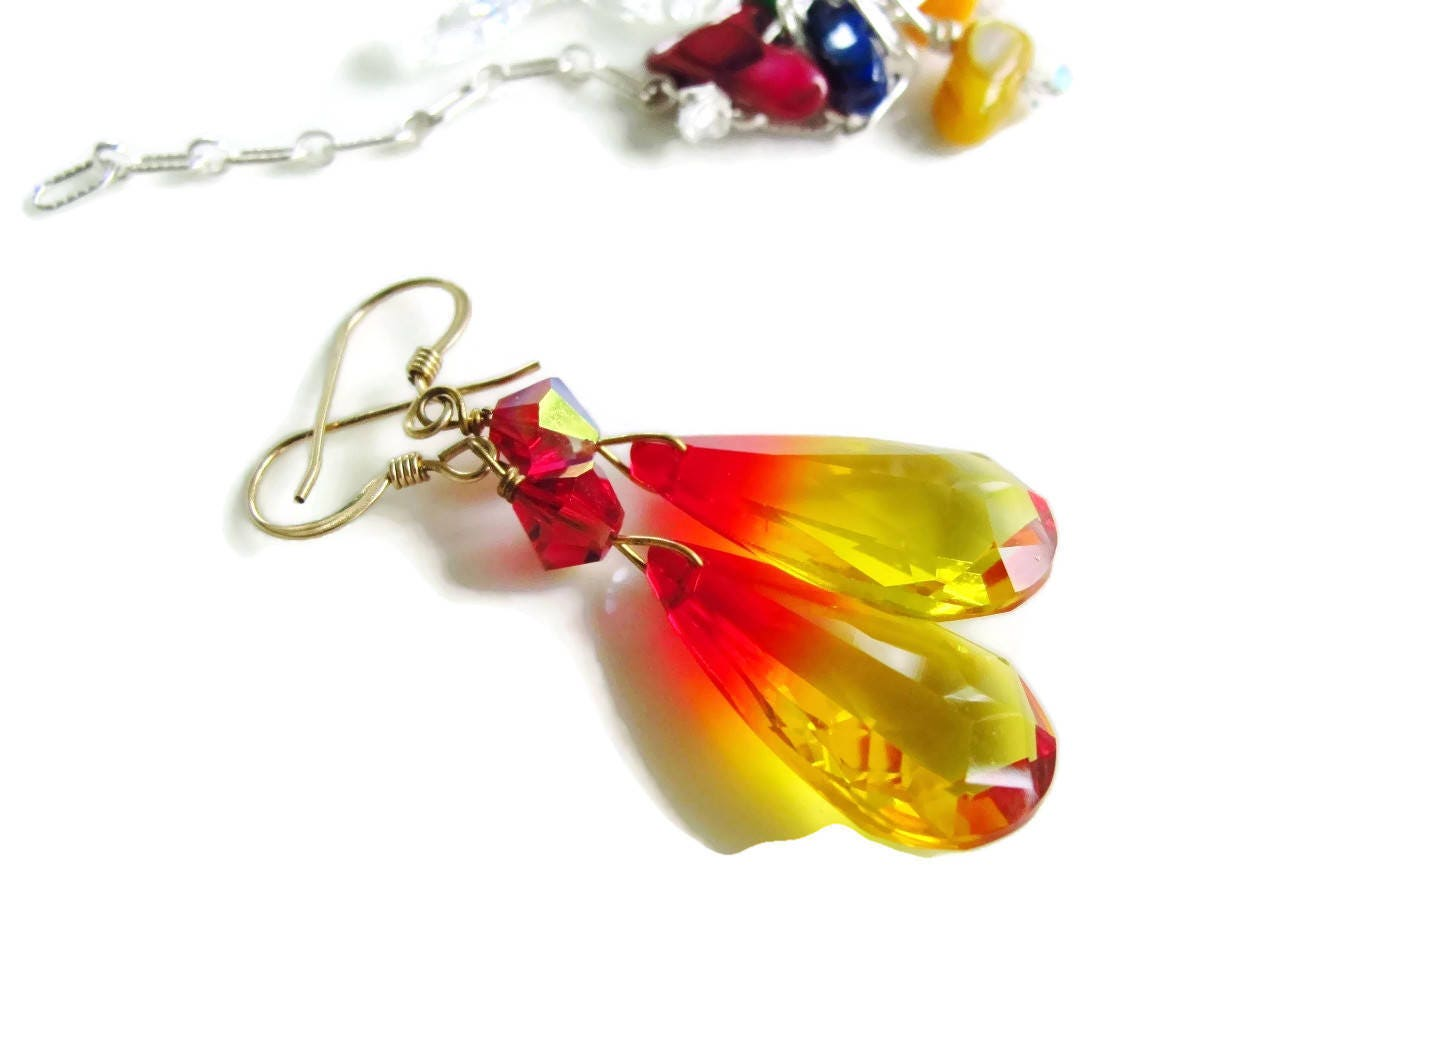 Earrings Christmas Gift Idea Red Yellow Crystal Teardrop